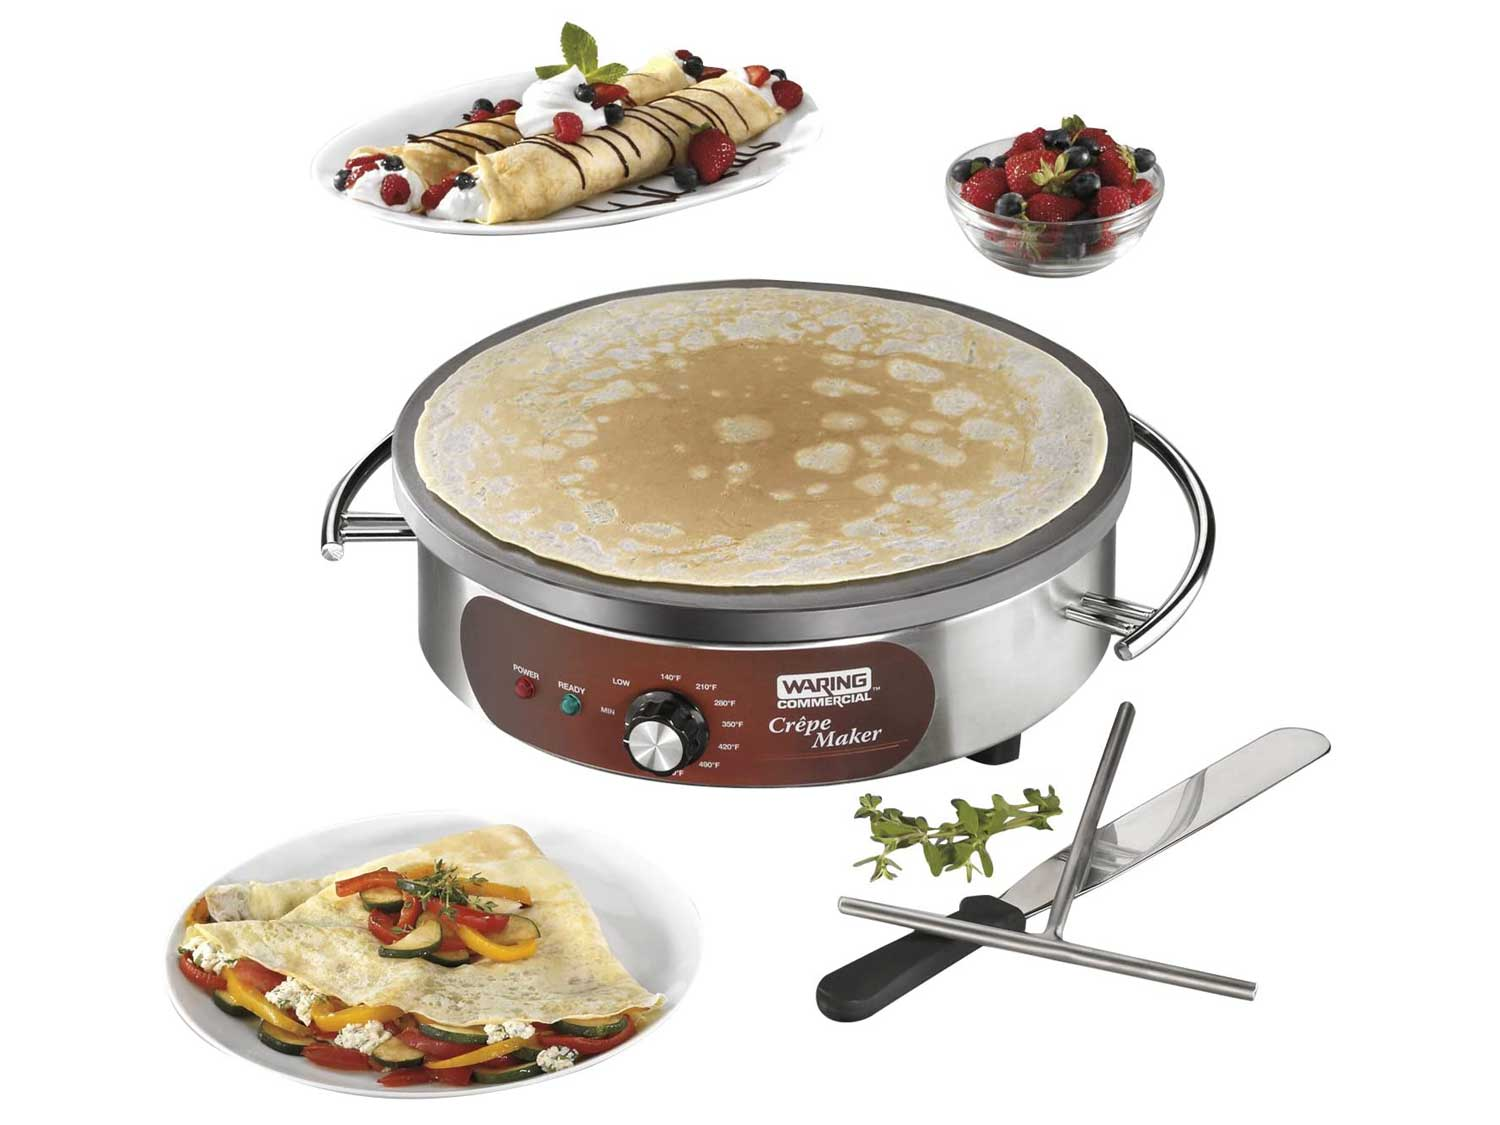 Waring Commercial Heavy-Duty Electric Crepe Maker